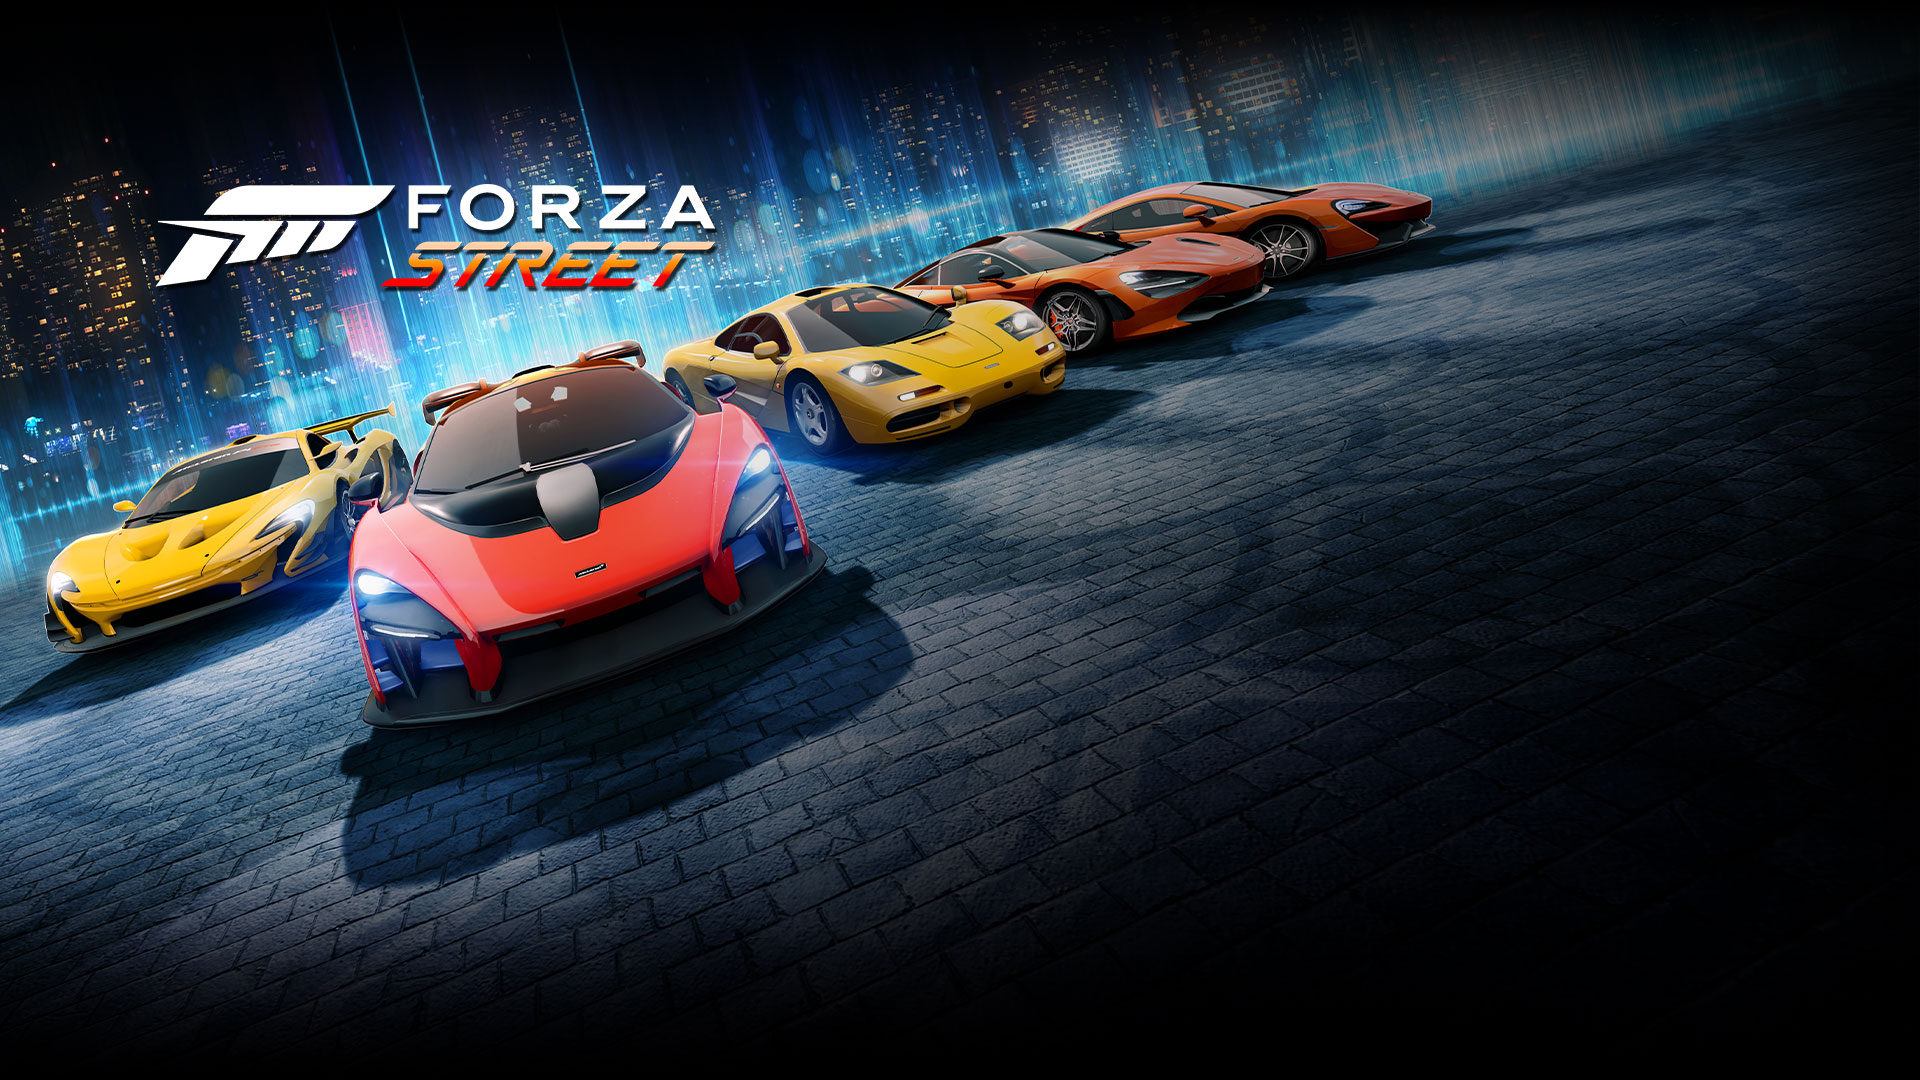 Microsoft says its work on games like <em>Forza Street</em> would be hurt by Apple's threatened actions against Unreal Engine development.